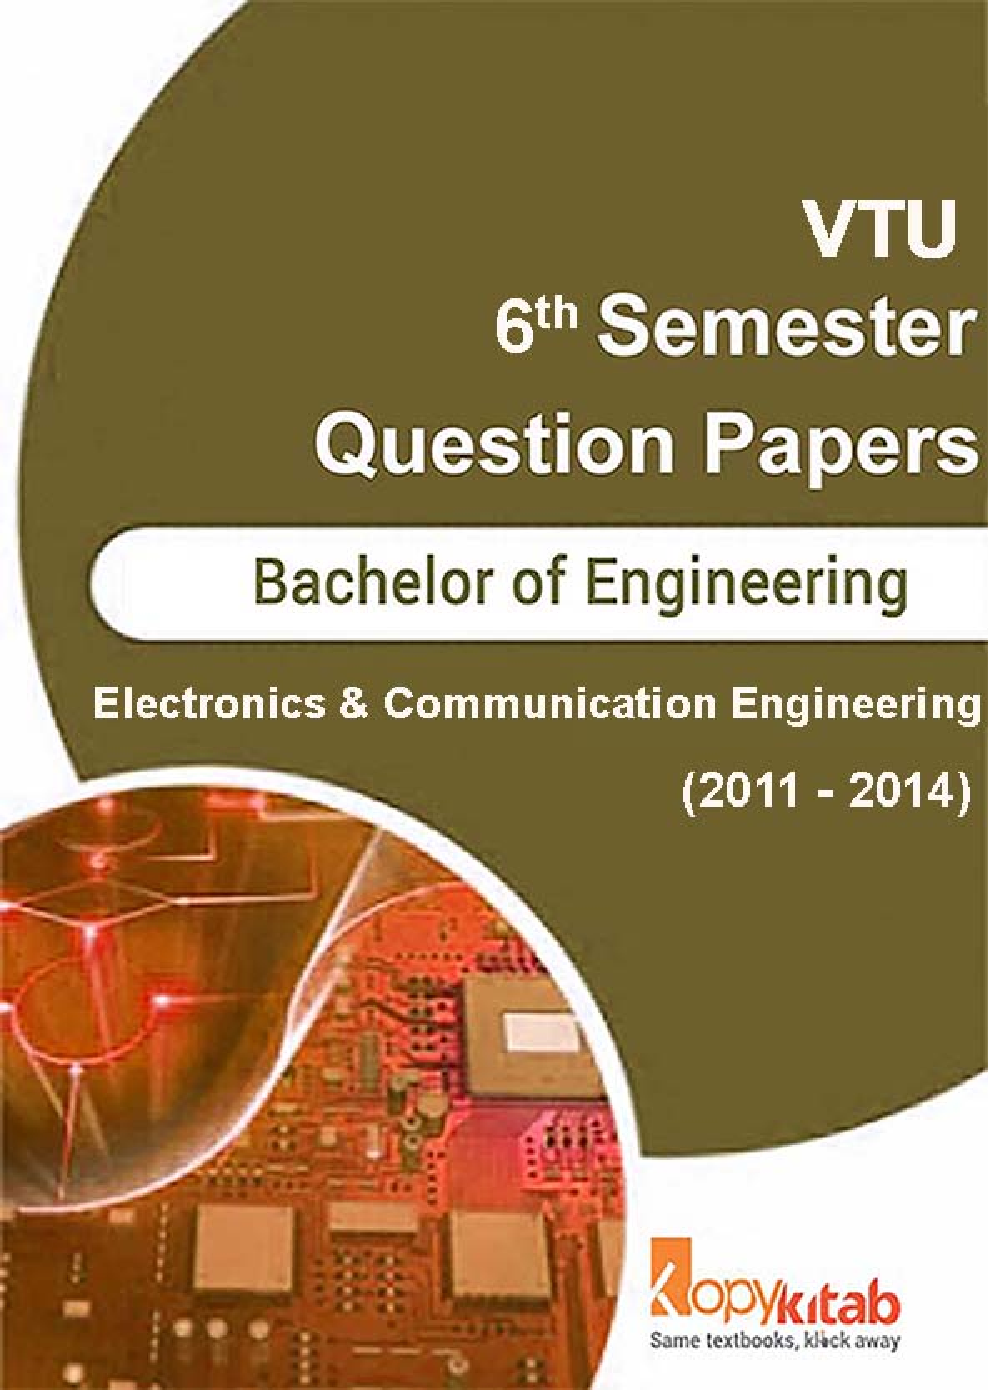 VTU QUESTION PAPERS 6th Semester Electronics & Communication Engineering 2011-2014 - Page 1